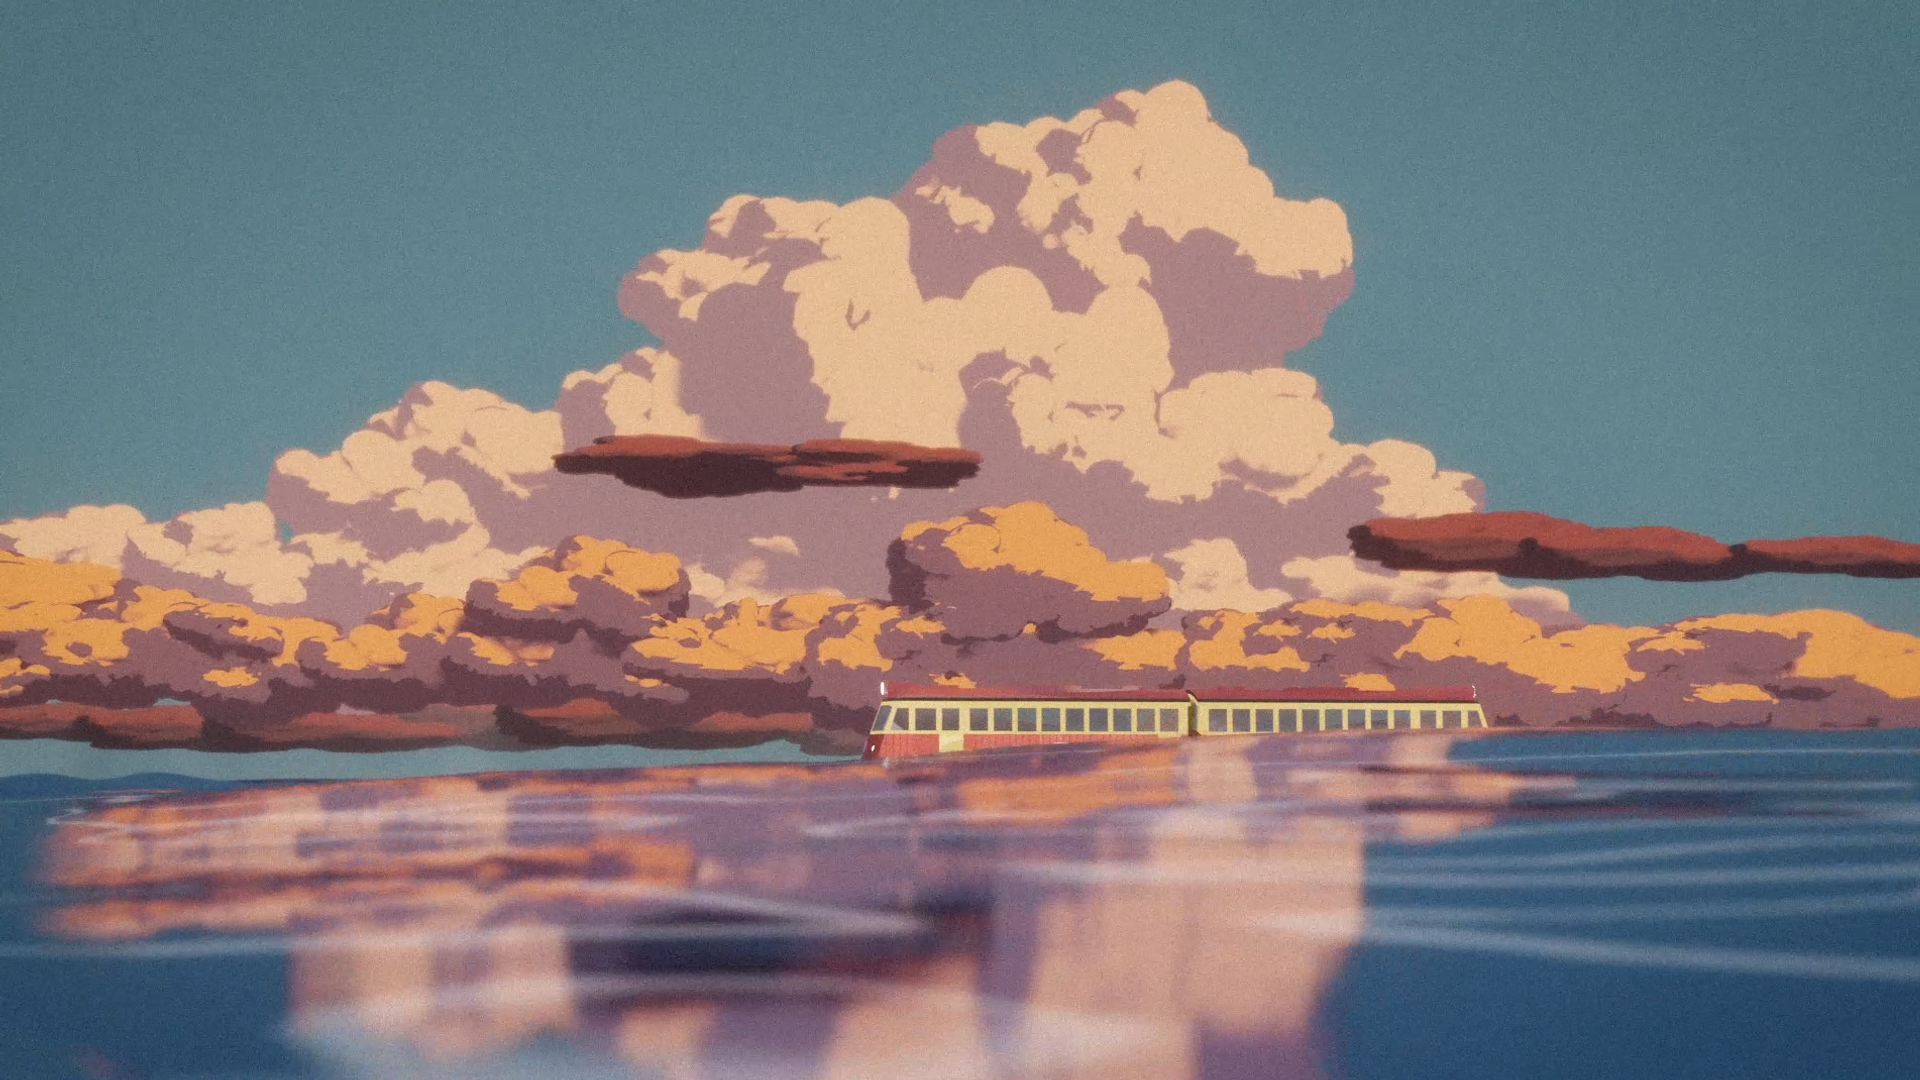 Spirited away train scene recreated in Blender